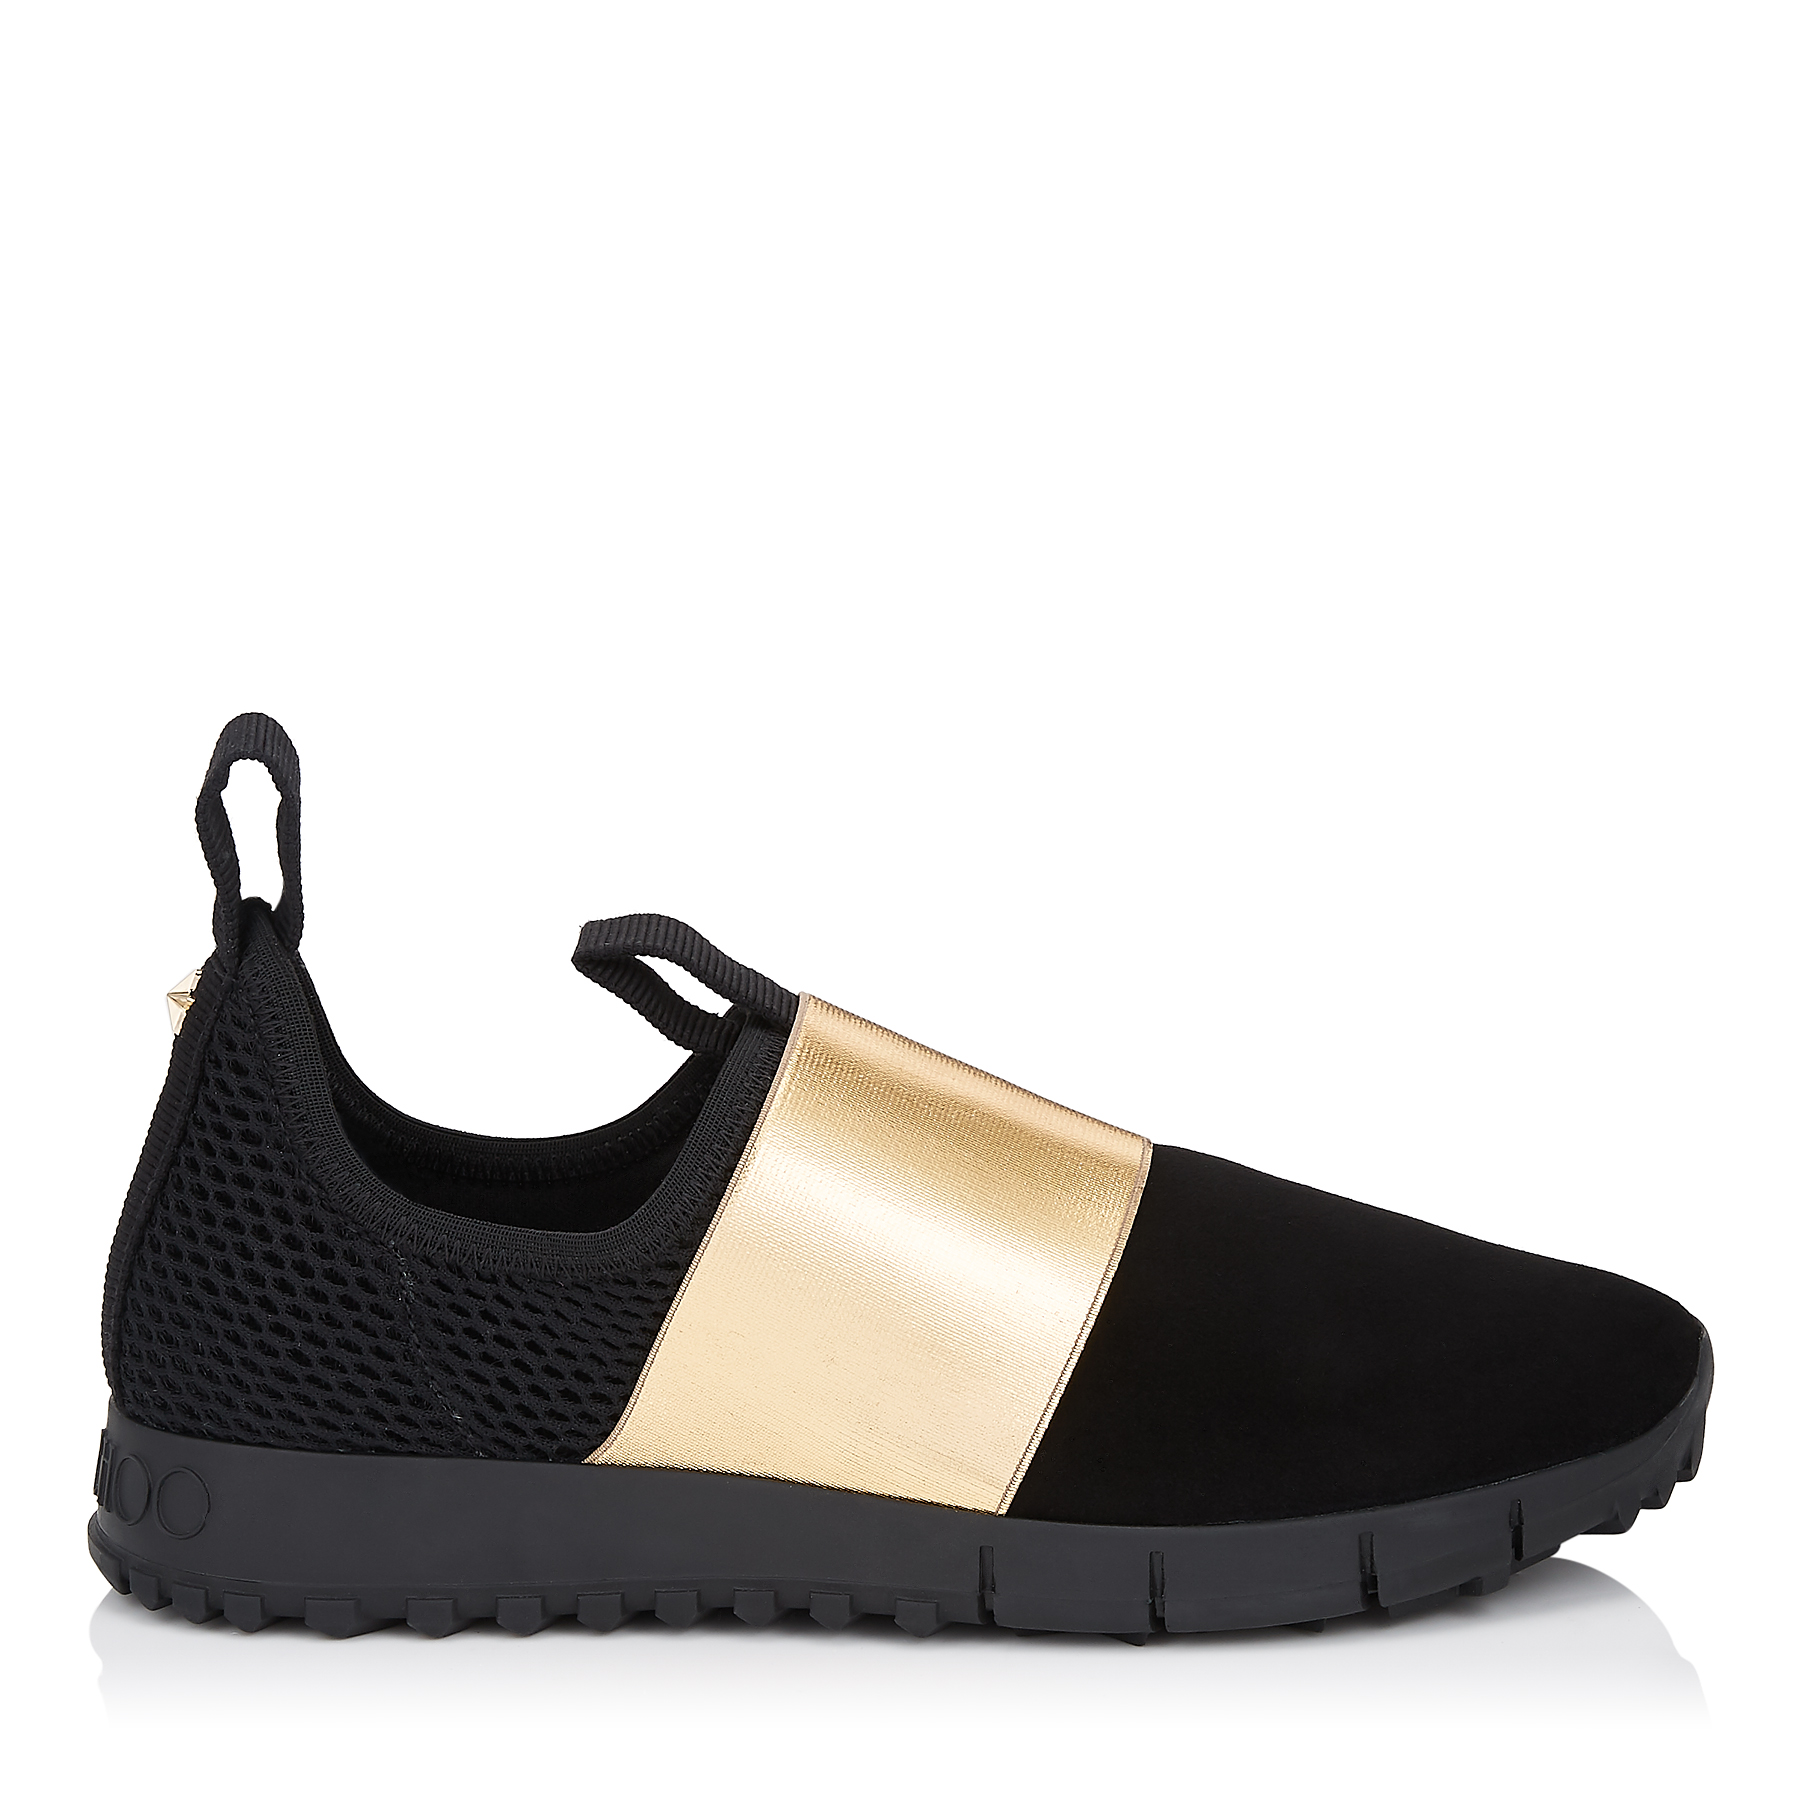 Photo of OAKLAND/F Black Suede and Mesh with Gold Metallic Elastic Sock-Like Trainers by Jimmy Choo womens shoes - buy Jimmy Choo footwear online